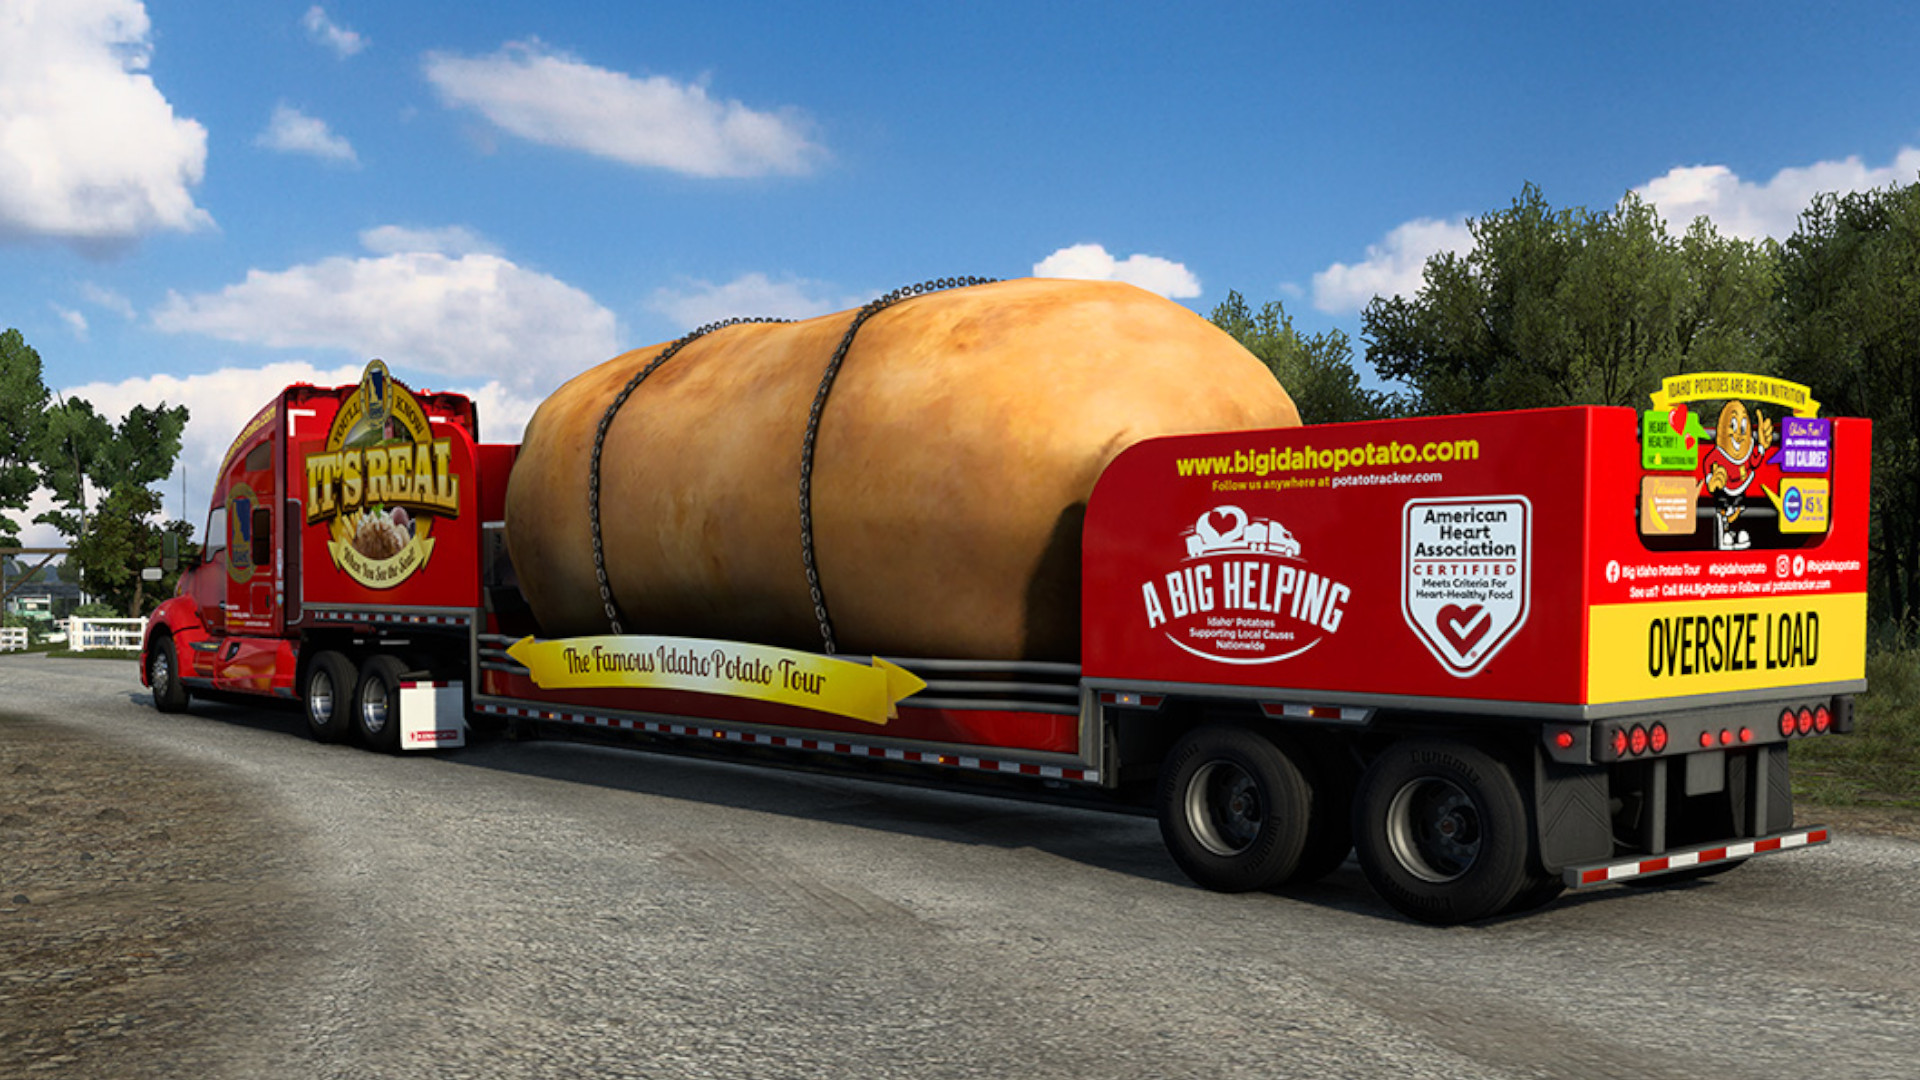 The latest American Truck Simulator event is about hauling a giant potato